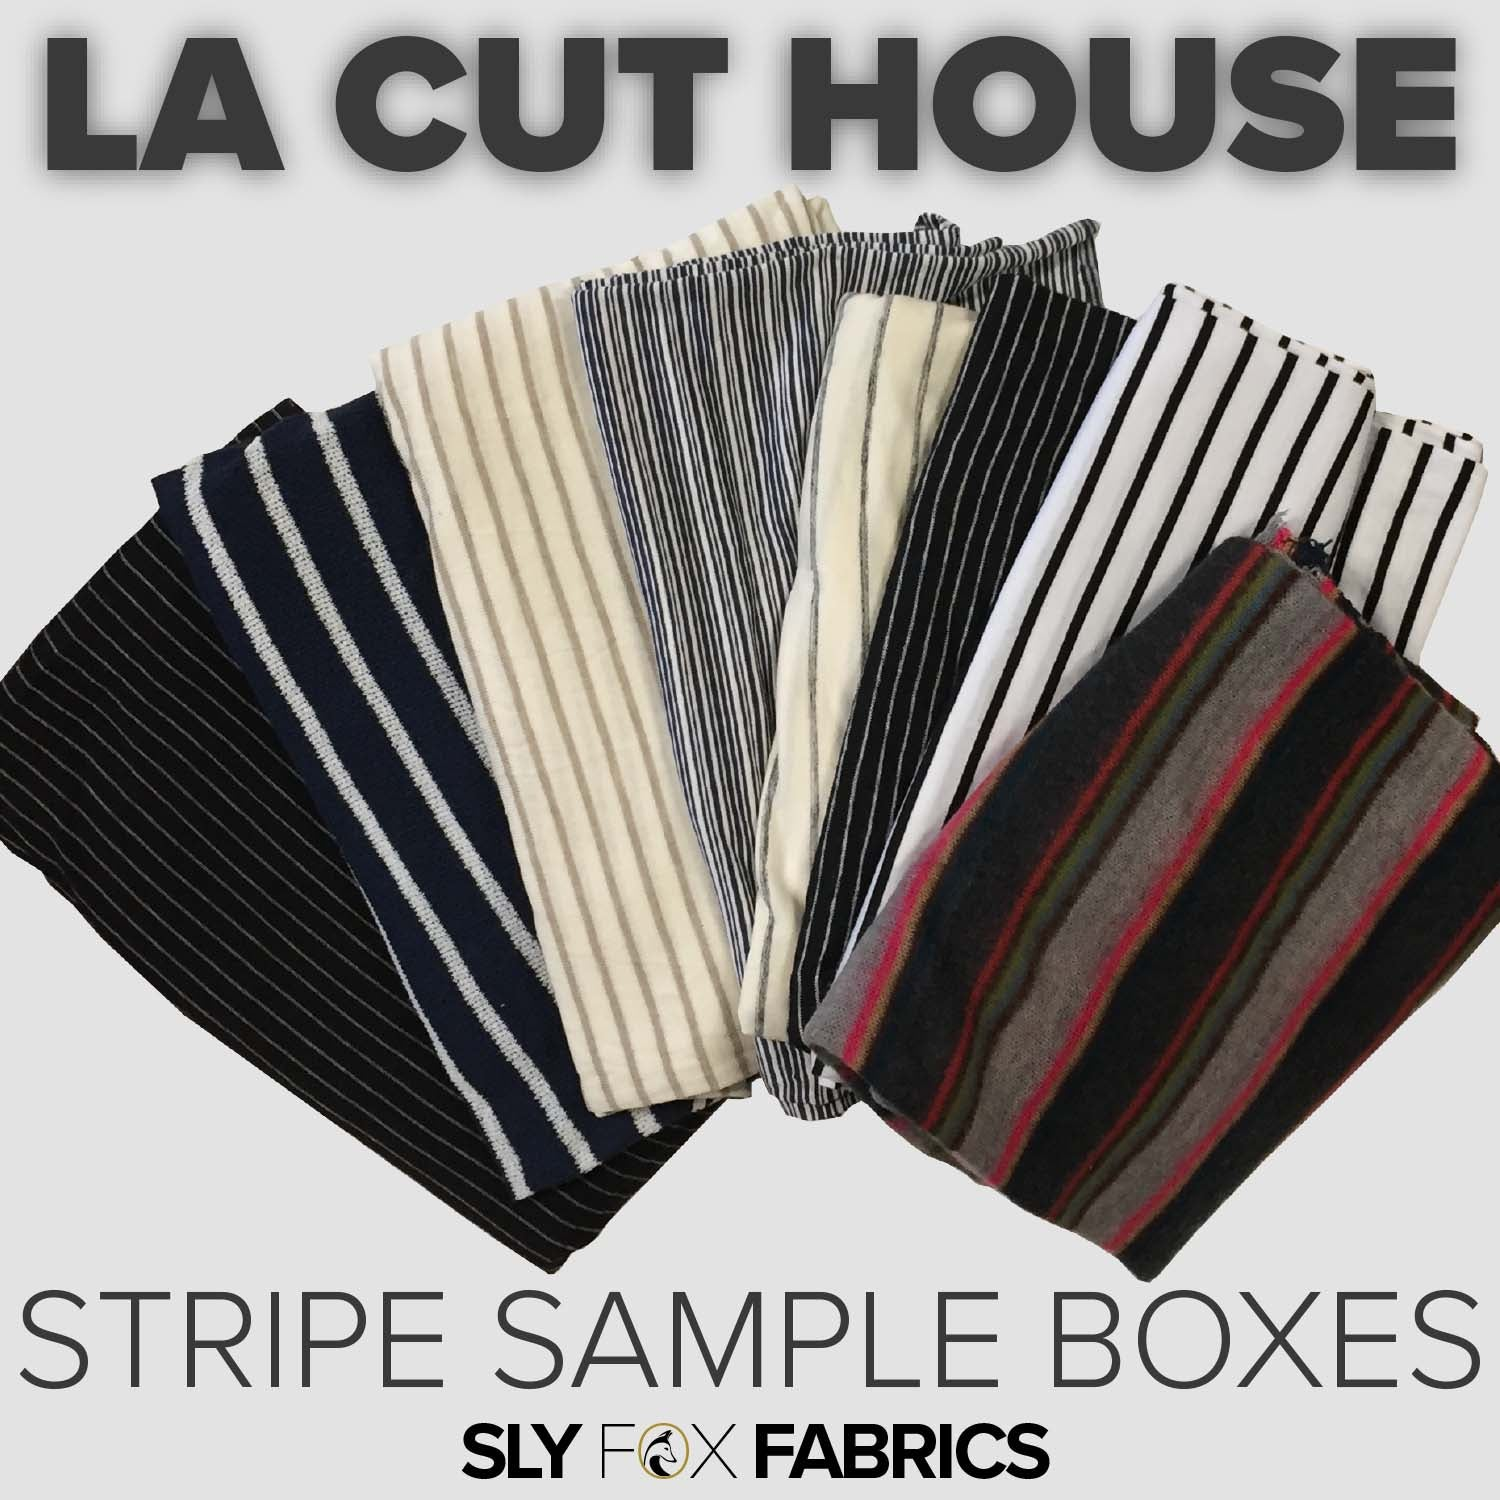 Cut House Stripe Sample Boxes